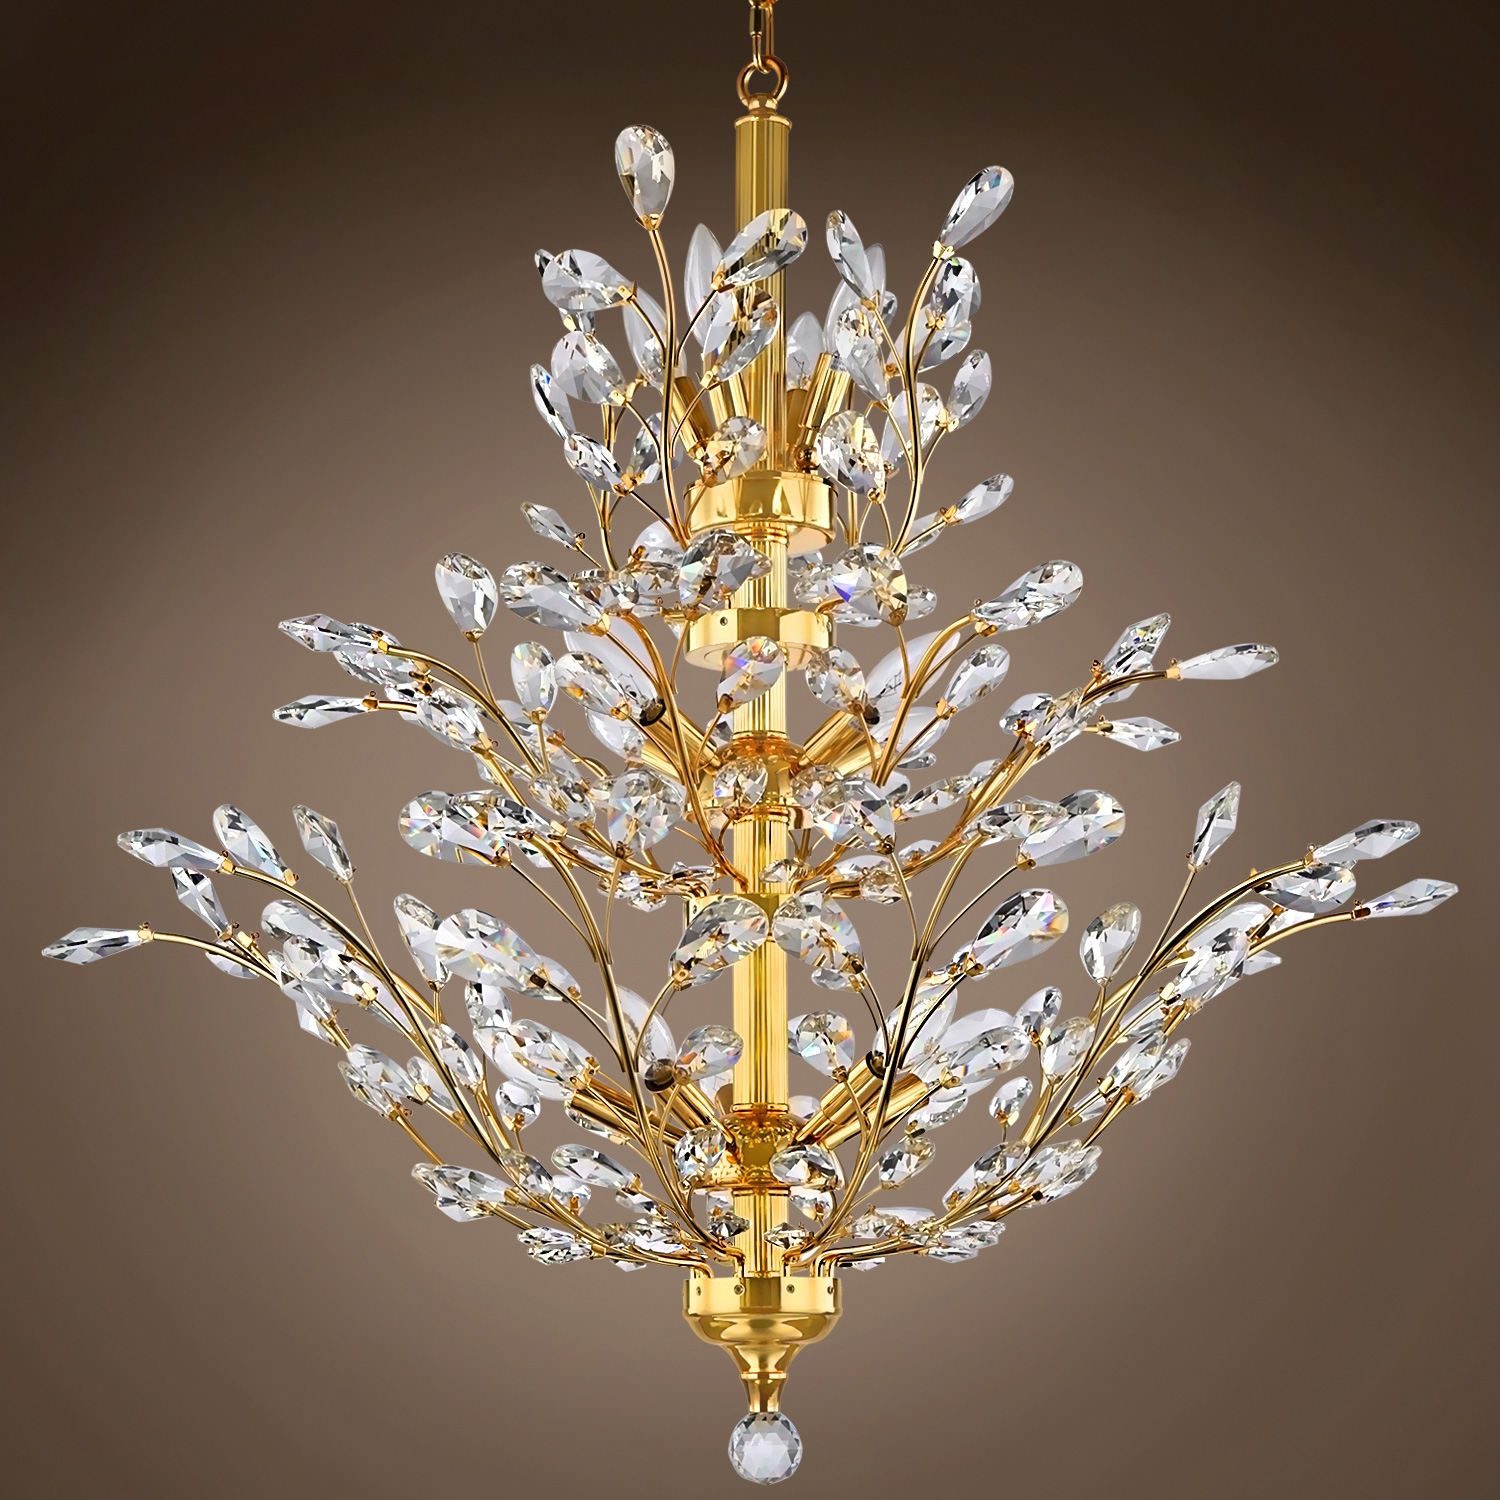 Joshua Marshal 700109 Branch Of Light 13 Light Chrome Chandelier Within Branch Crystal Chandelier (Image 12 of 15)